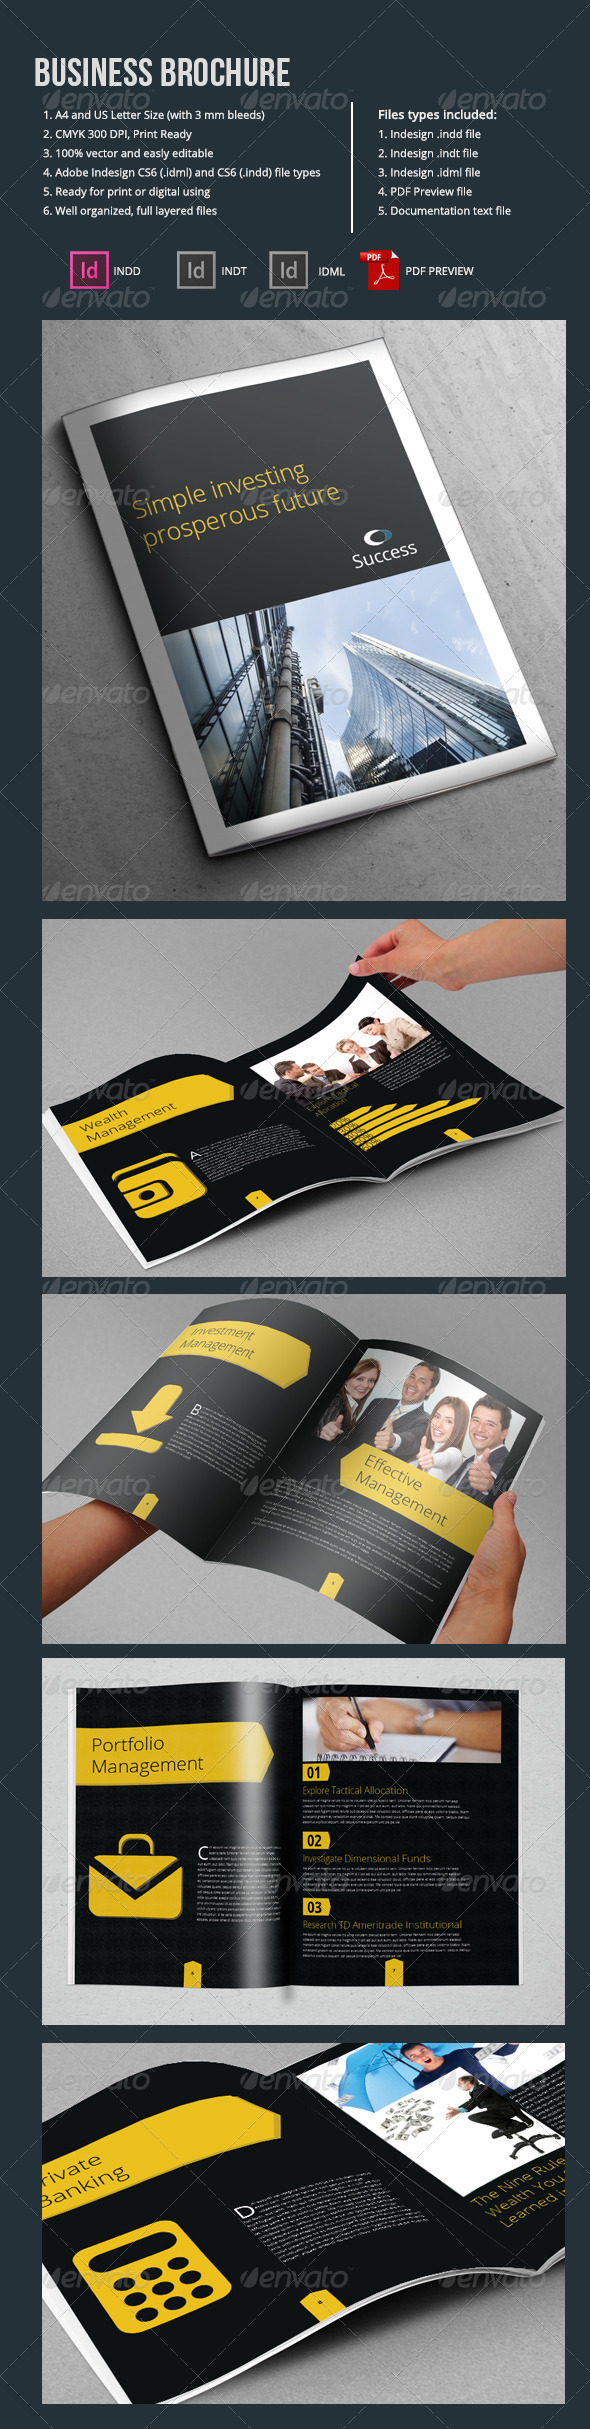 A4 Business Brochure Template 10 Pages - Corporate Brochures